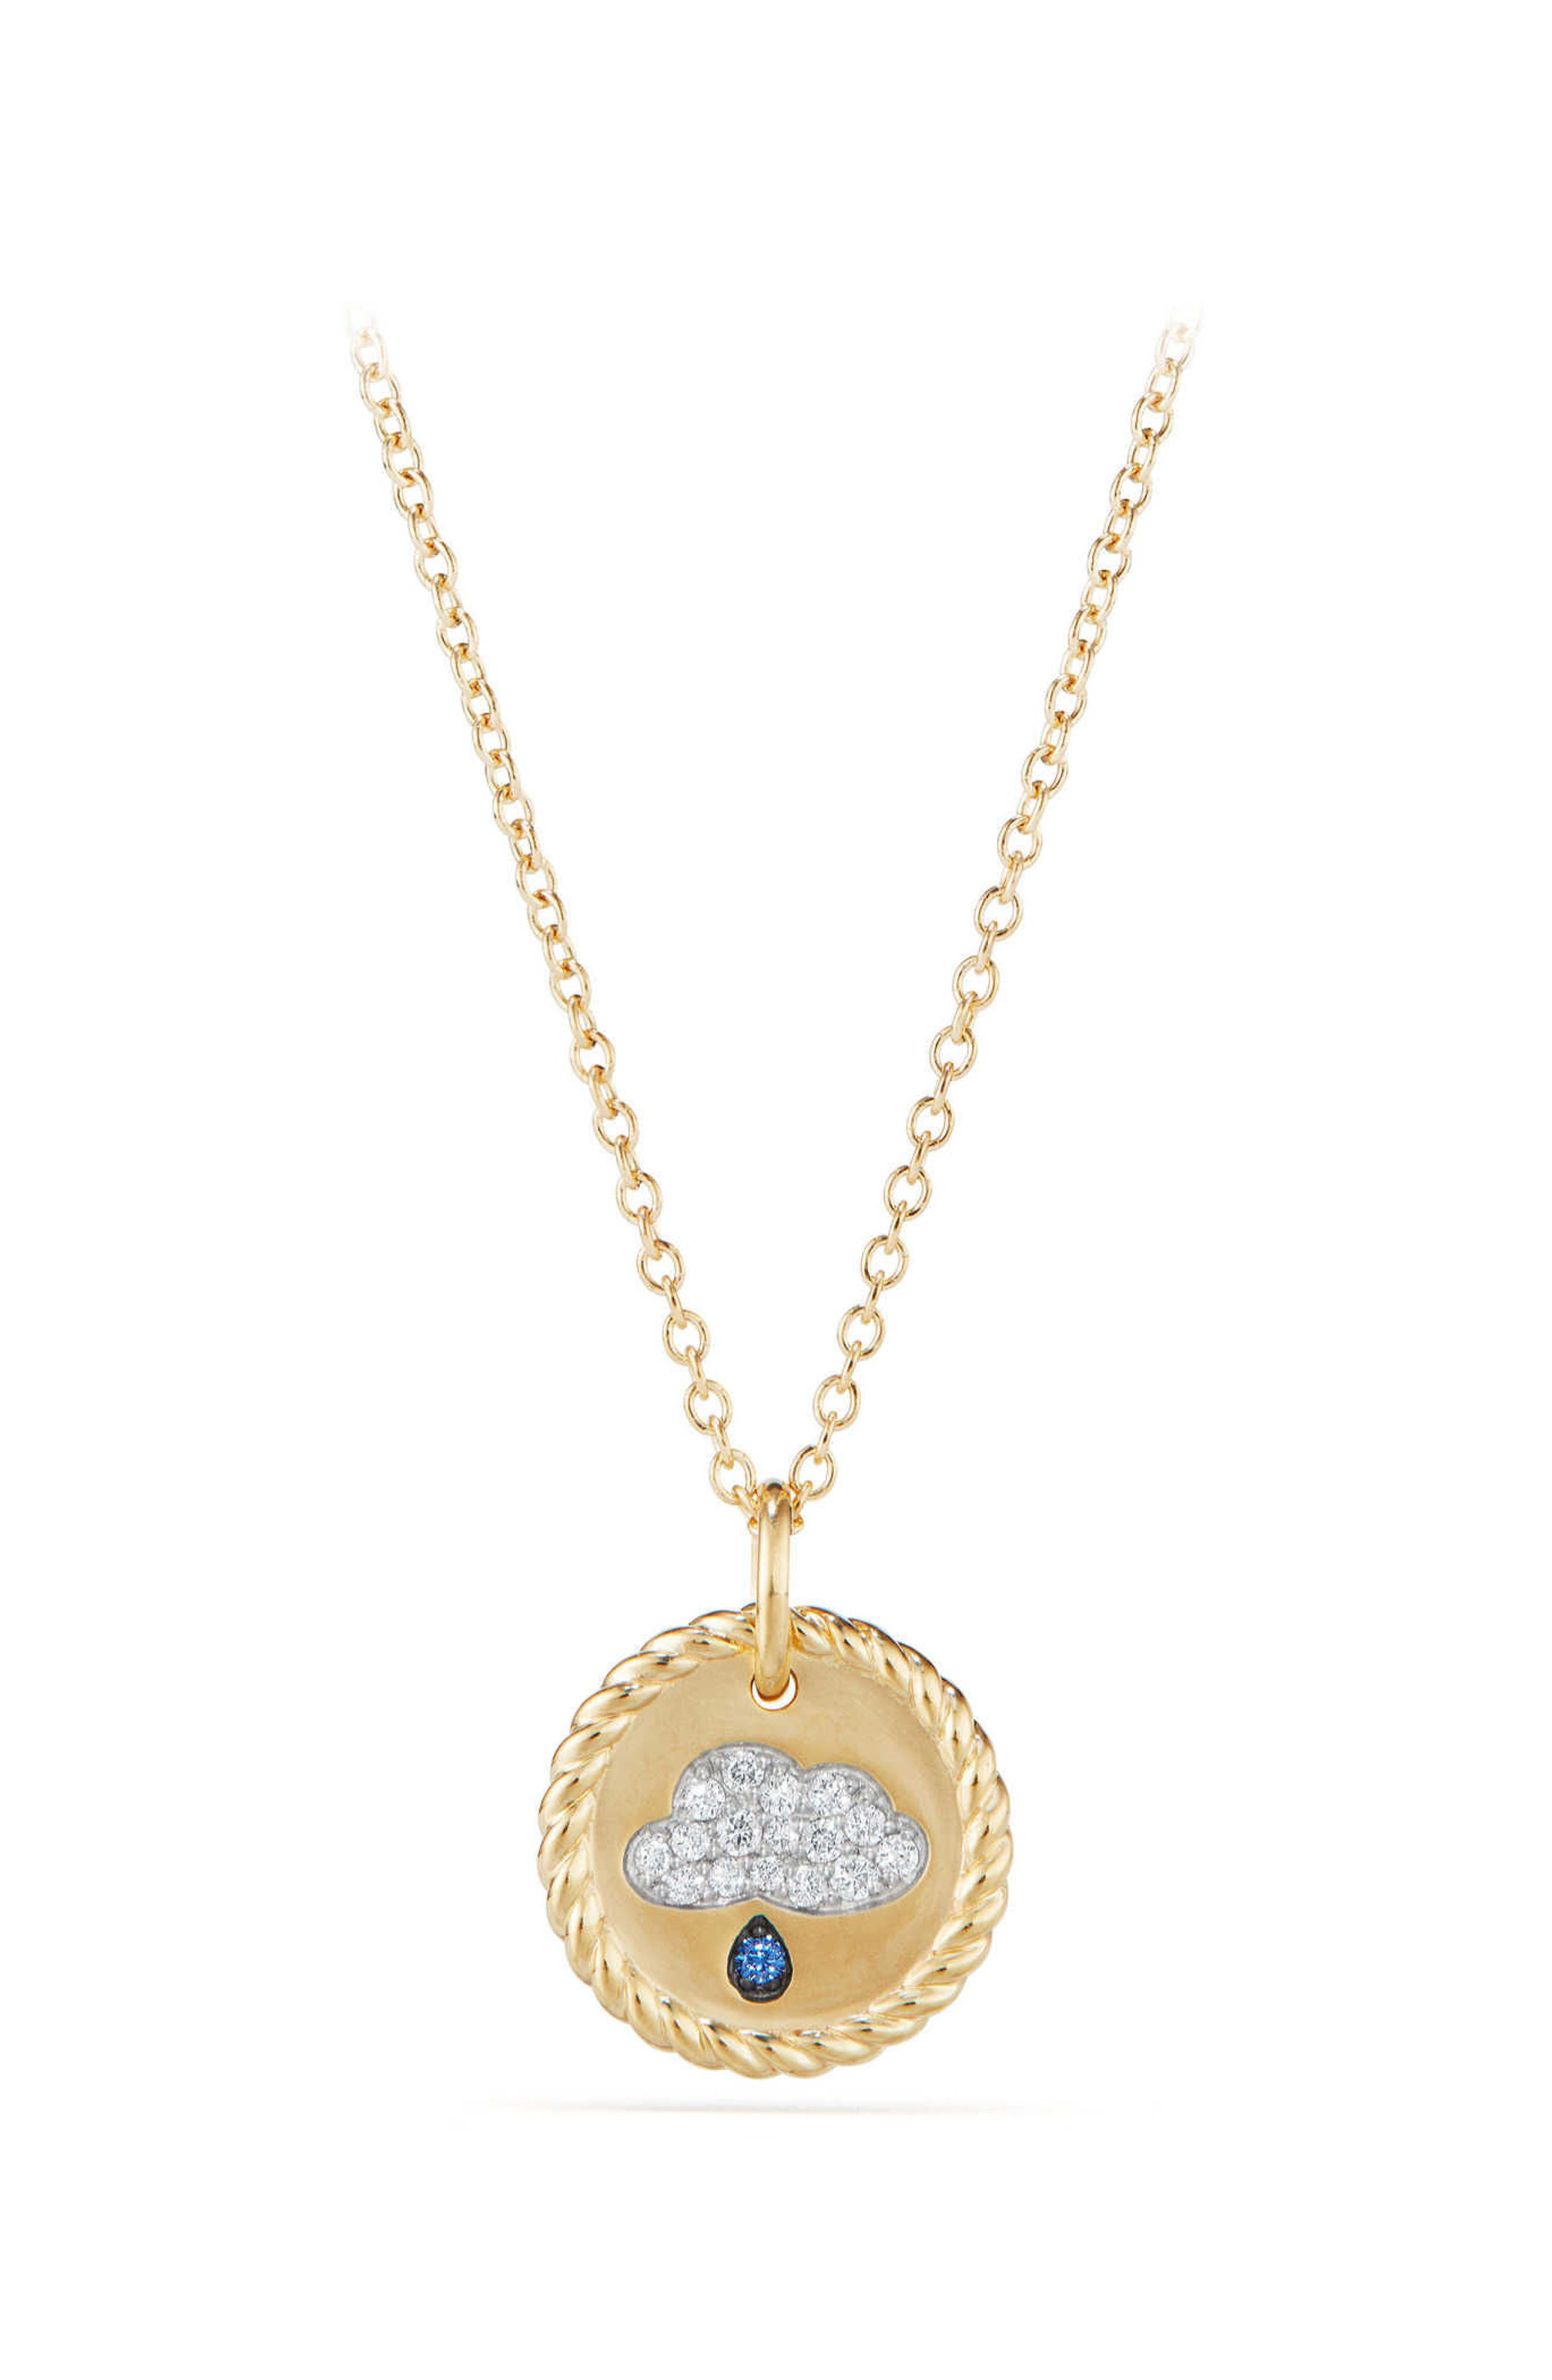 Cable Collectibles Raincloud Necklace with Diamonds & Light Blue Sapphires in 18K Gold,                         Main,                         color, GOLD/ DIAMOND/ BLUE SAPPHIRE